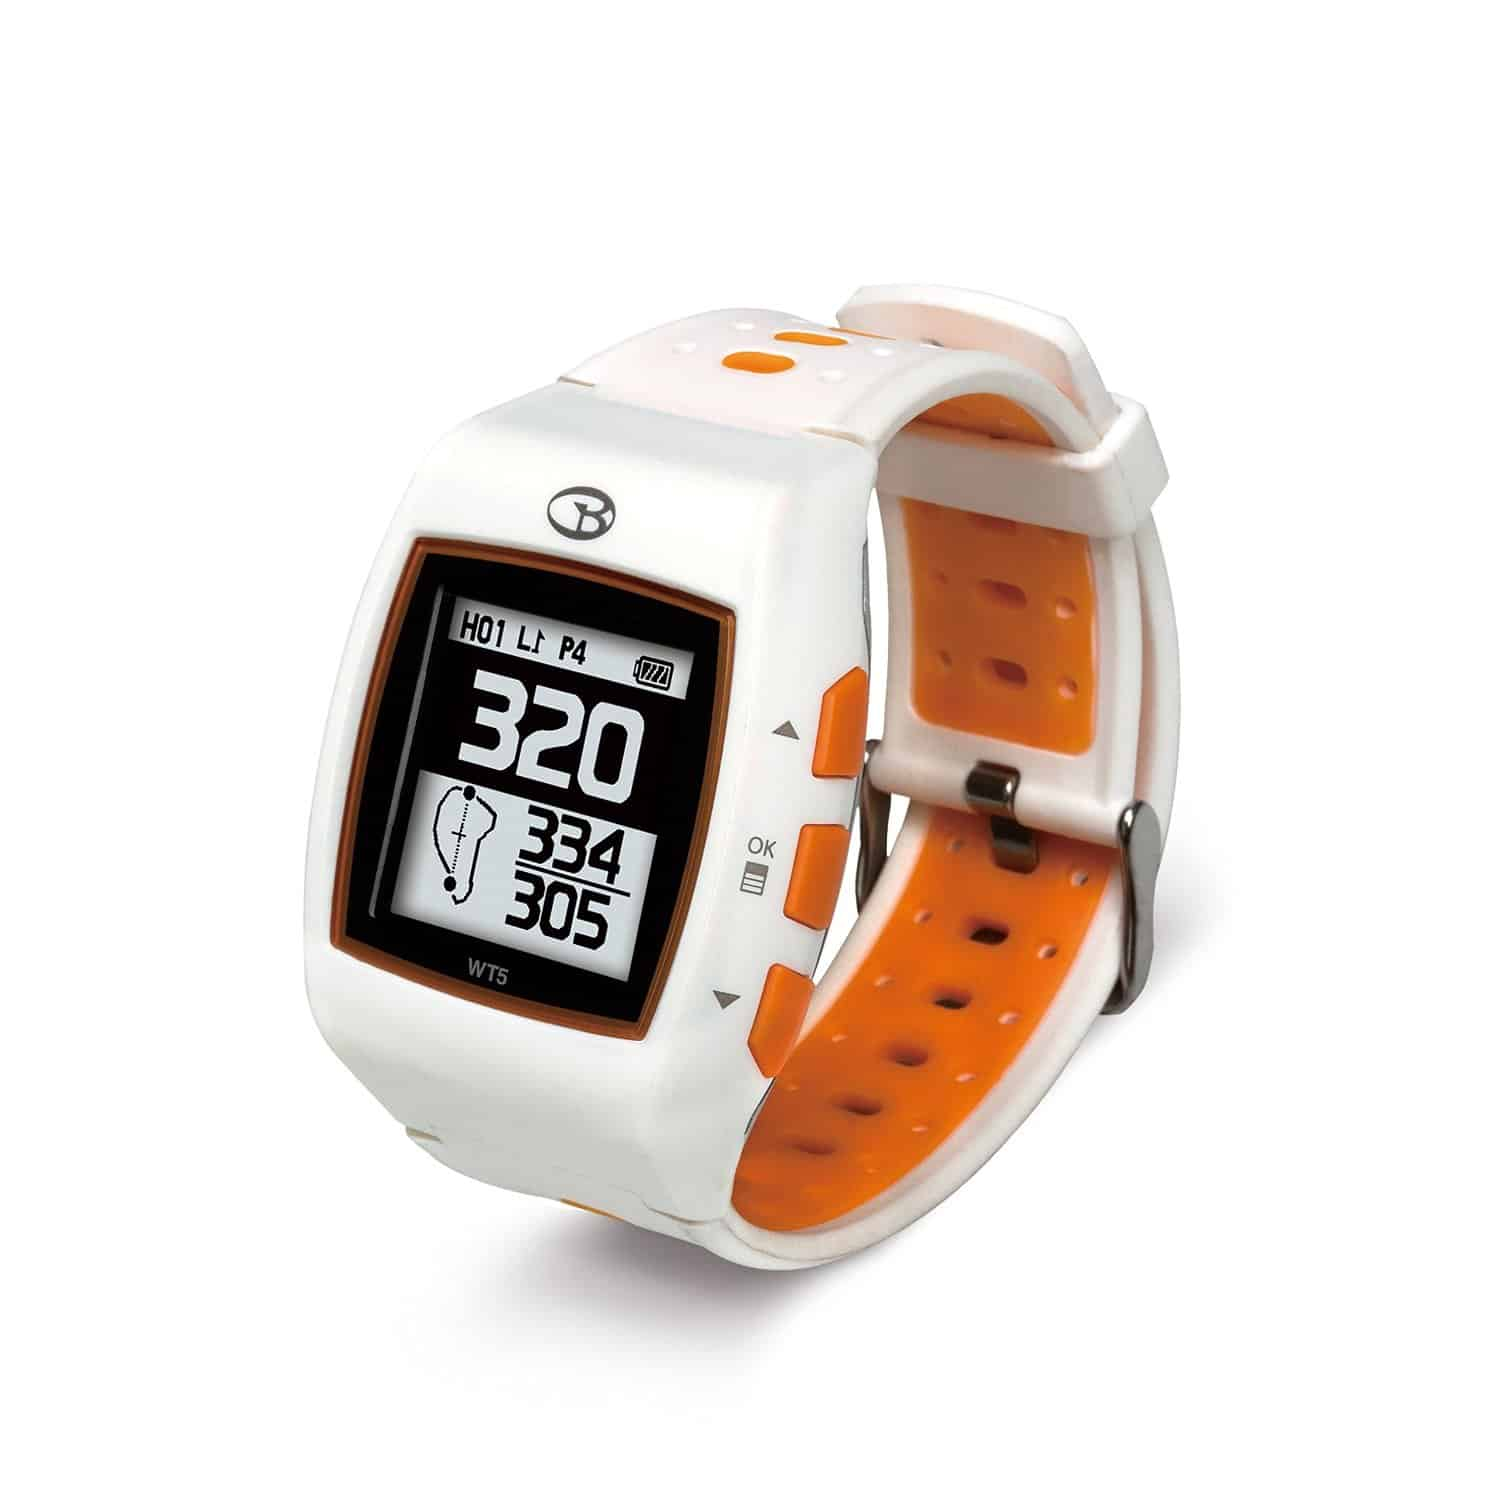 GolfBuddy WT5 Golf GPS Watch